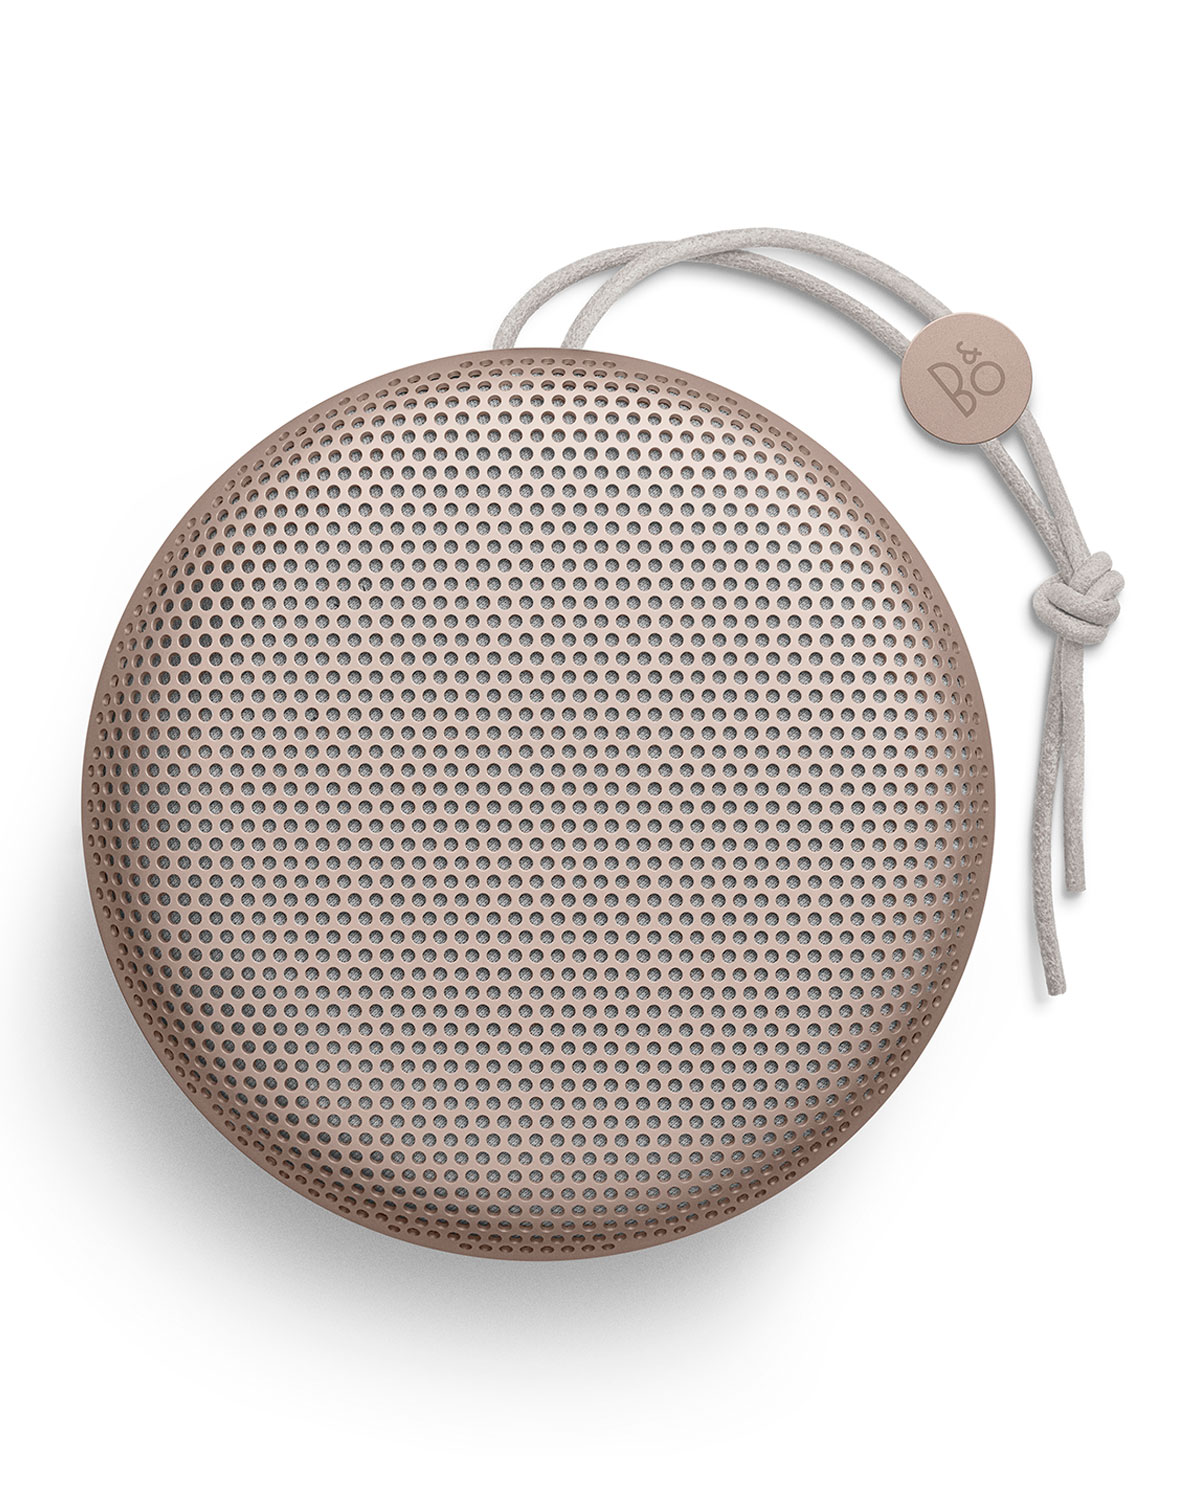 BANG & OLUFSEN Beoplay A1 Speaker in Black